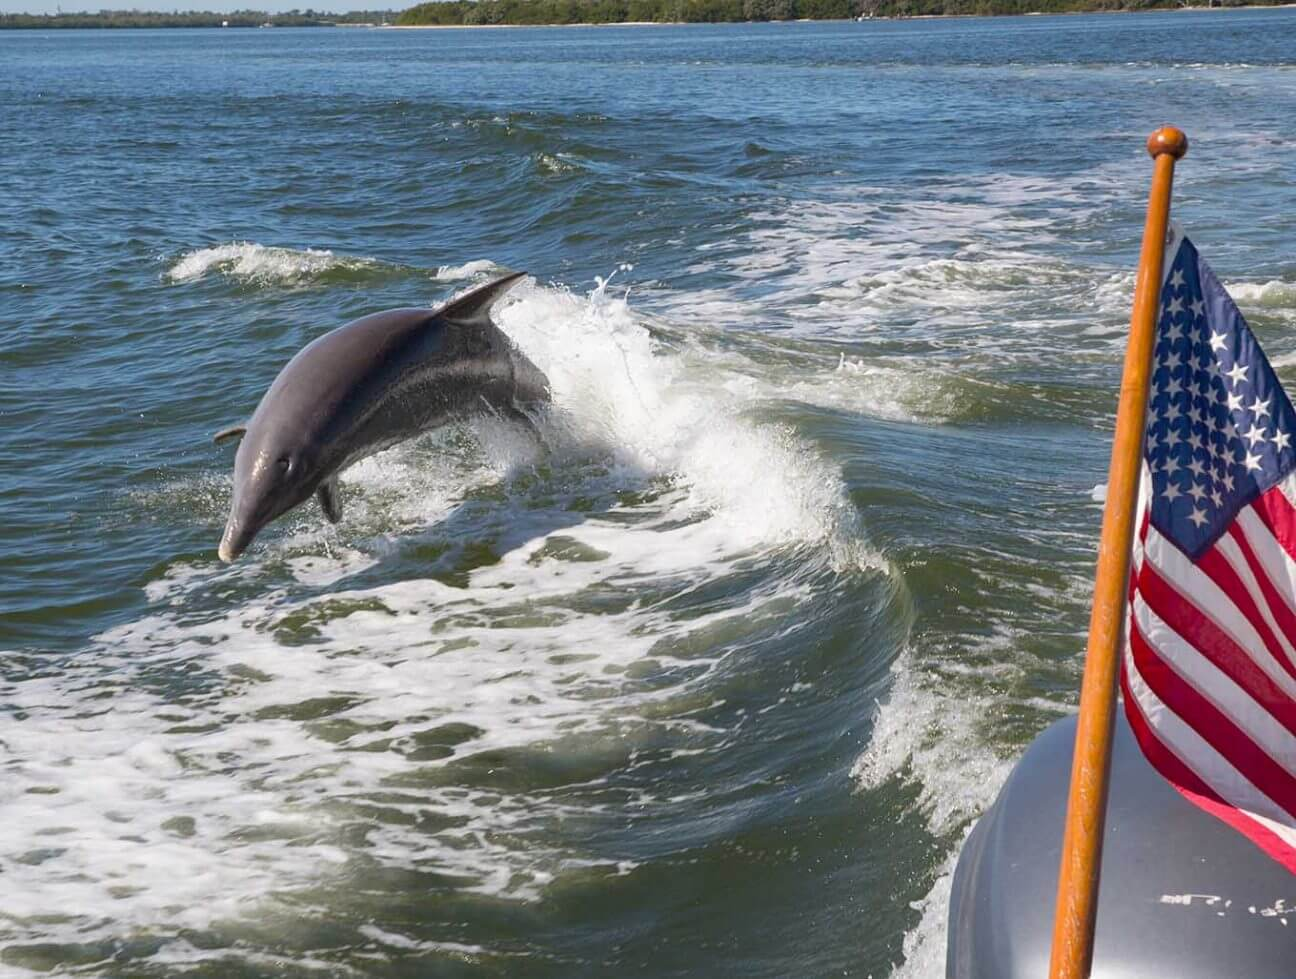 Dolphin playfully jumping out of the water as it follows a boat